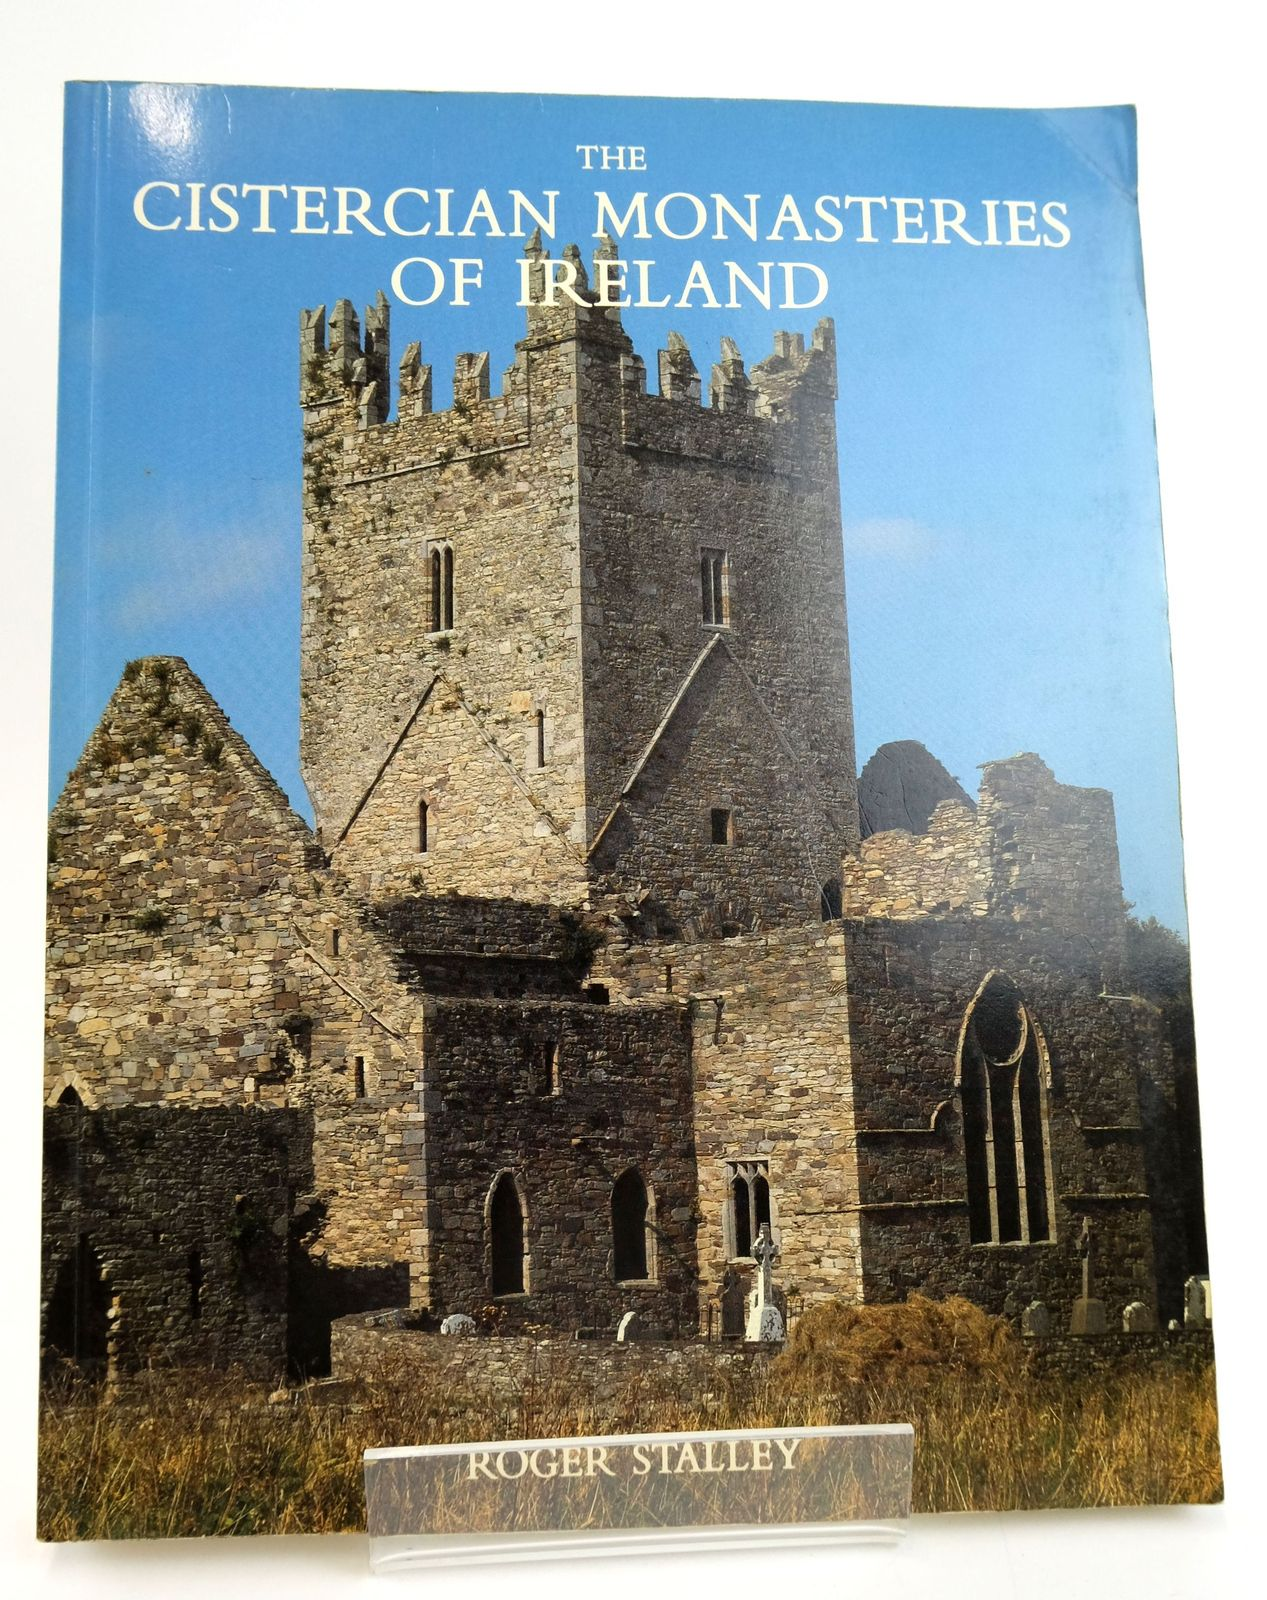 Photo of THE CISTERCIAN MONASTERIES OF IRELAND written by Stalley, Roger published by Yale University Press (STOCK CODE: 1820044)  for sale by Stella & Rose's Books